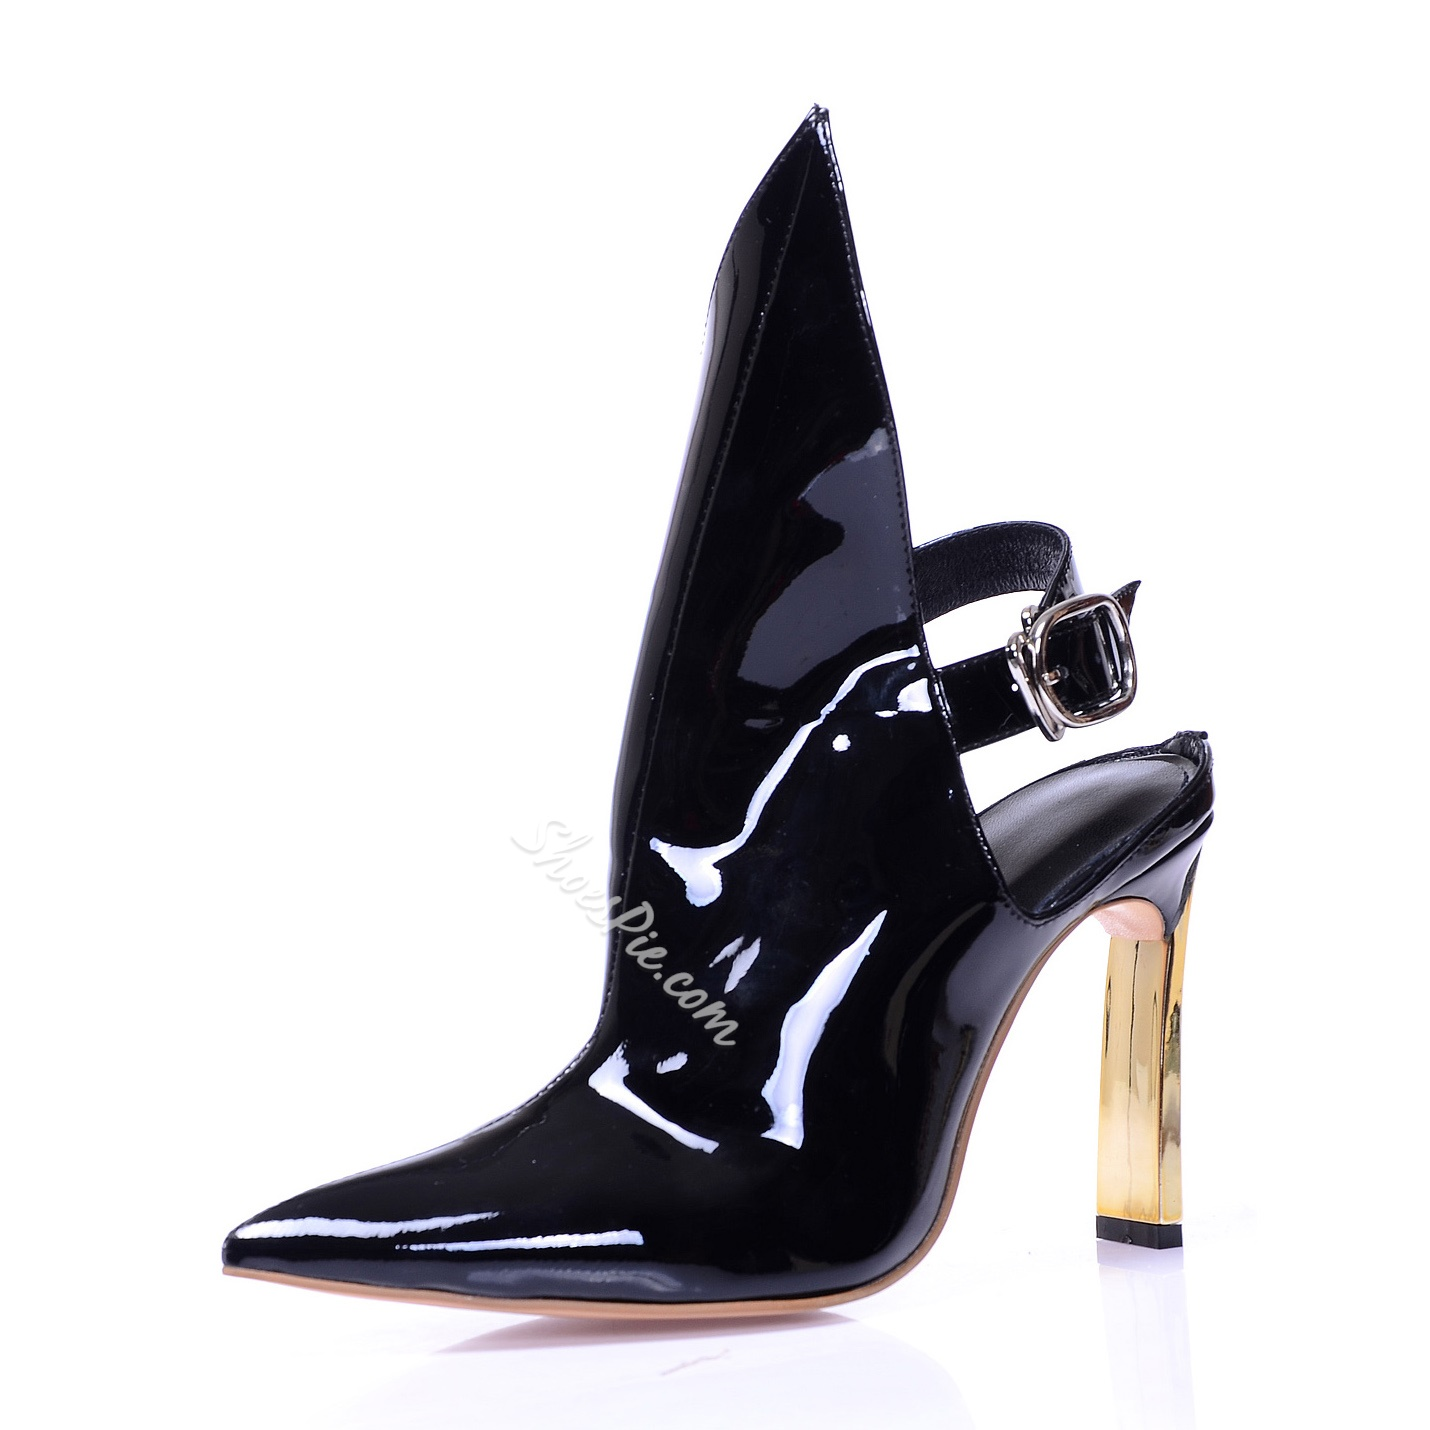 Chic Black Cut Out Buckled Ankle Boots